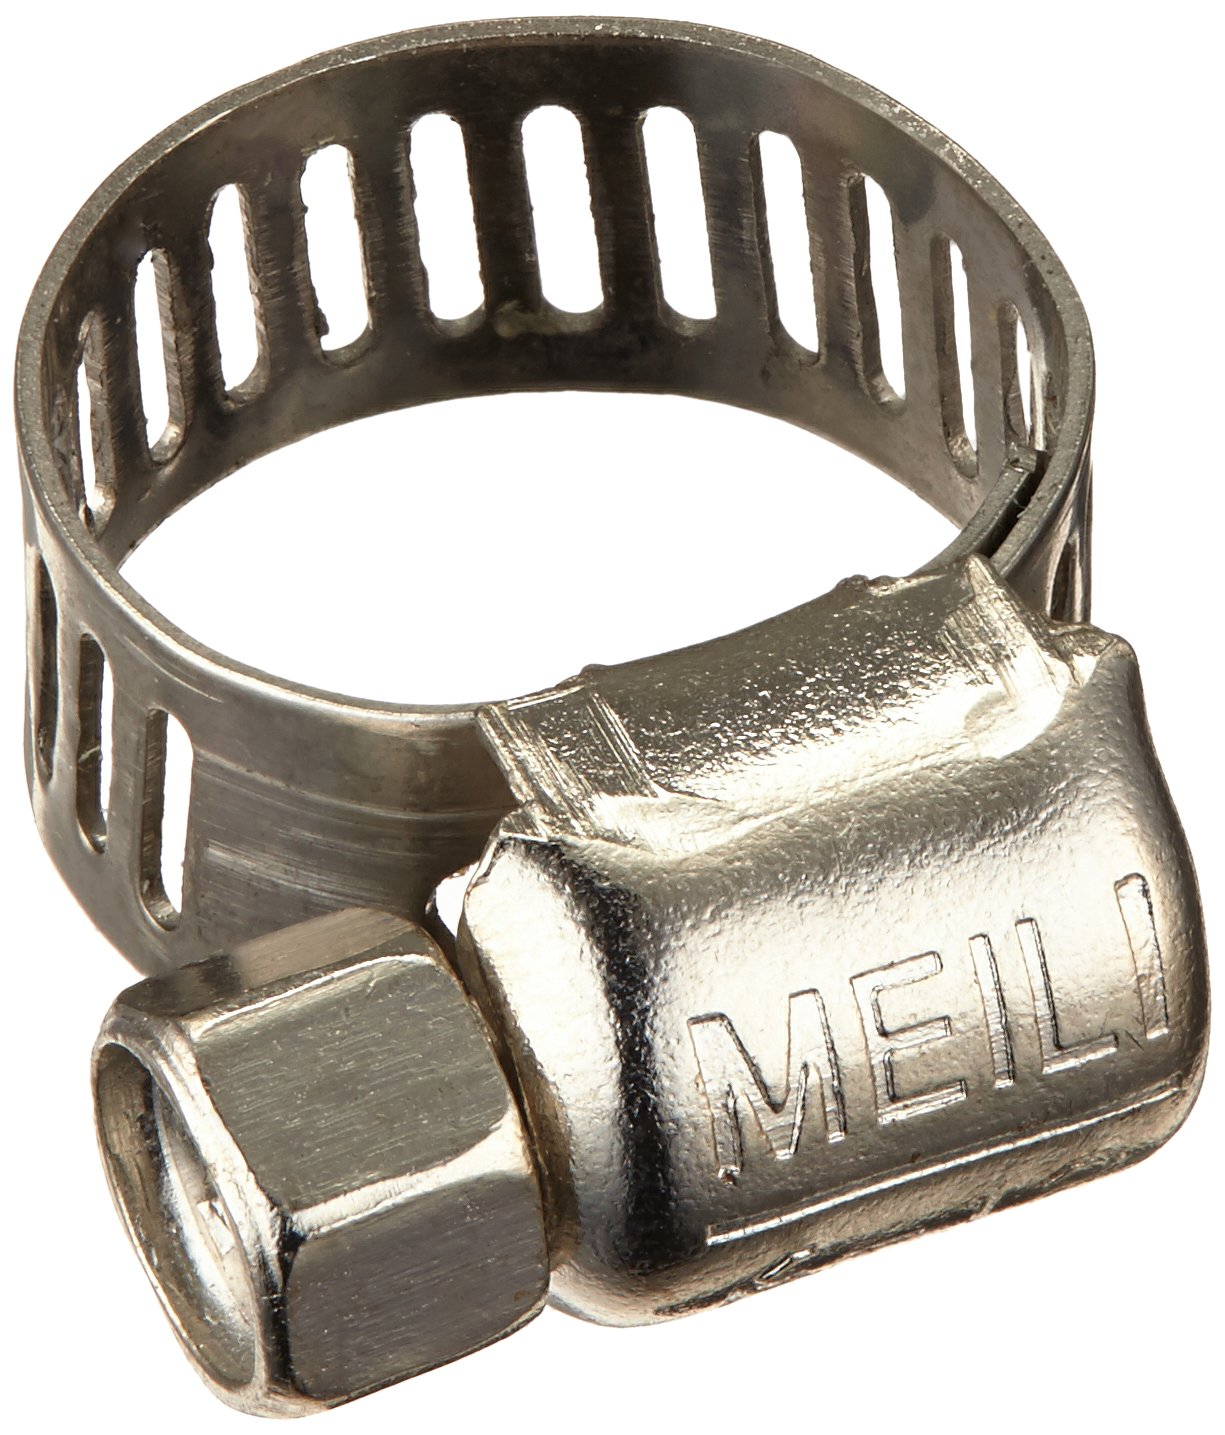 a14091800ux0084 UXCE9 Uxcell Hardware Parts Hose Pipe Fastener Clamp Hoop 6-12mm Uxcell 10 Piece